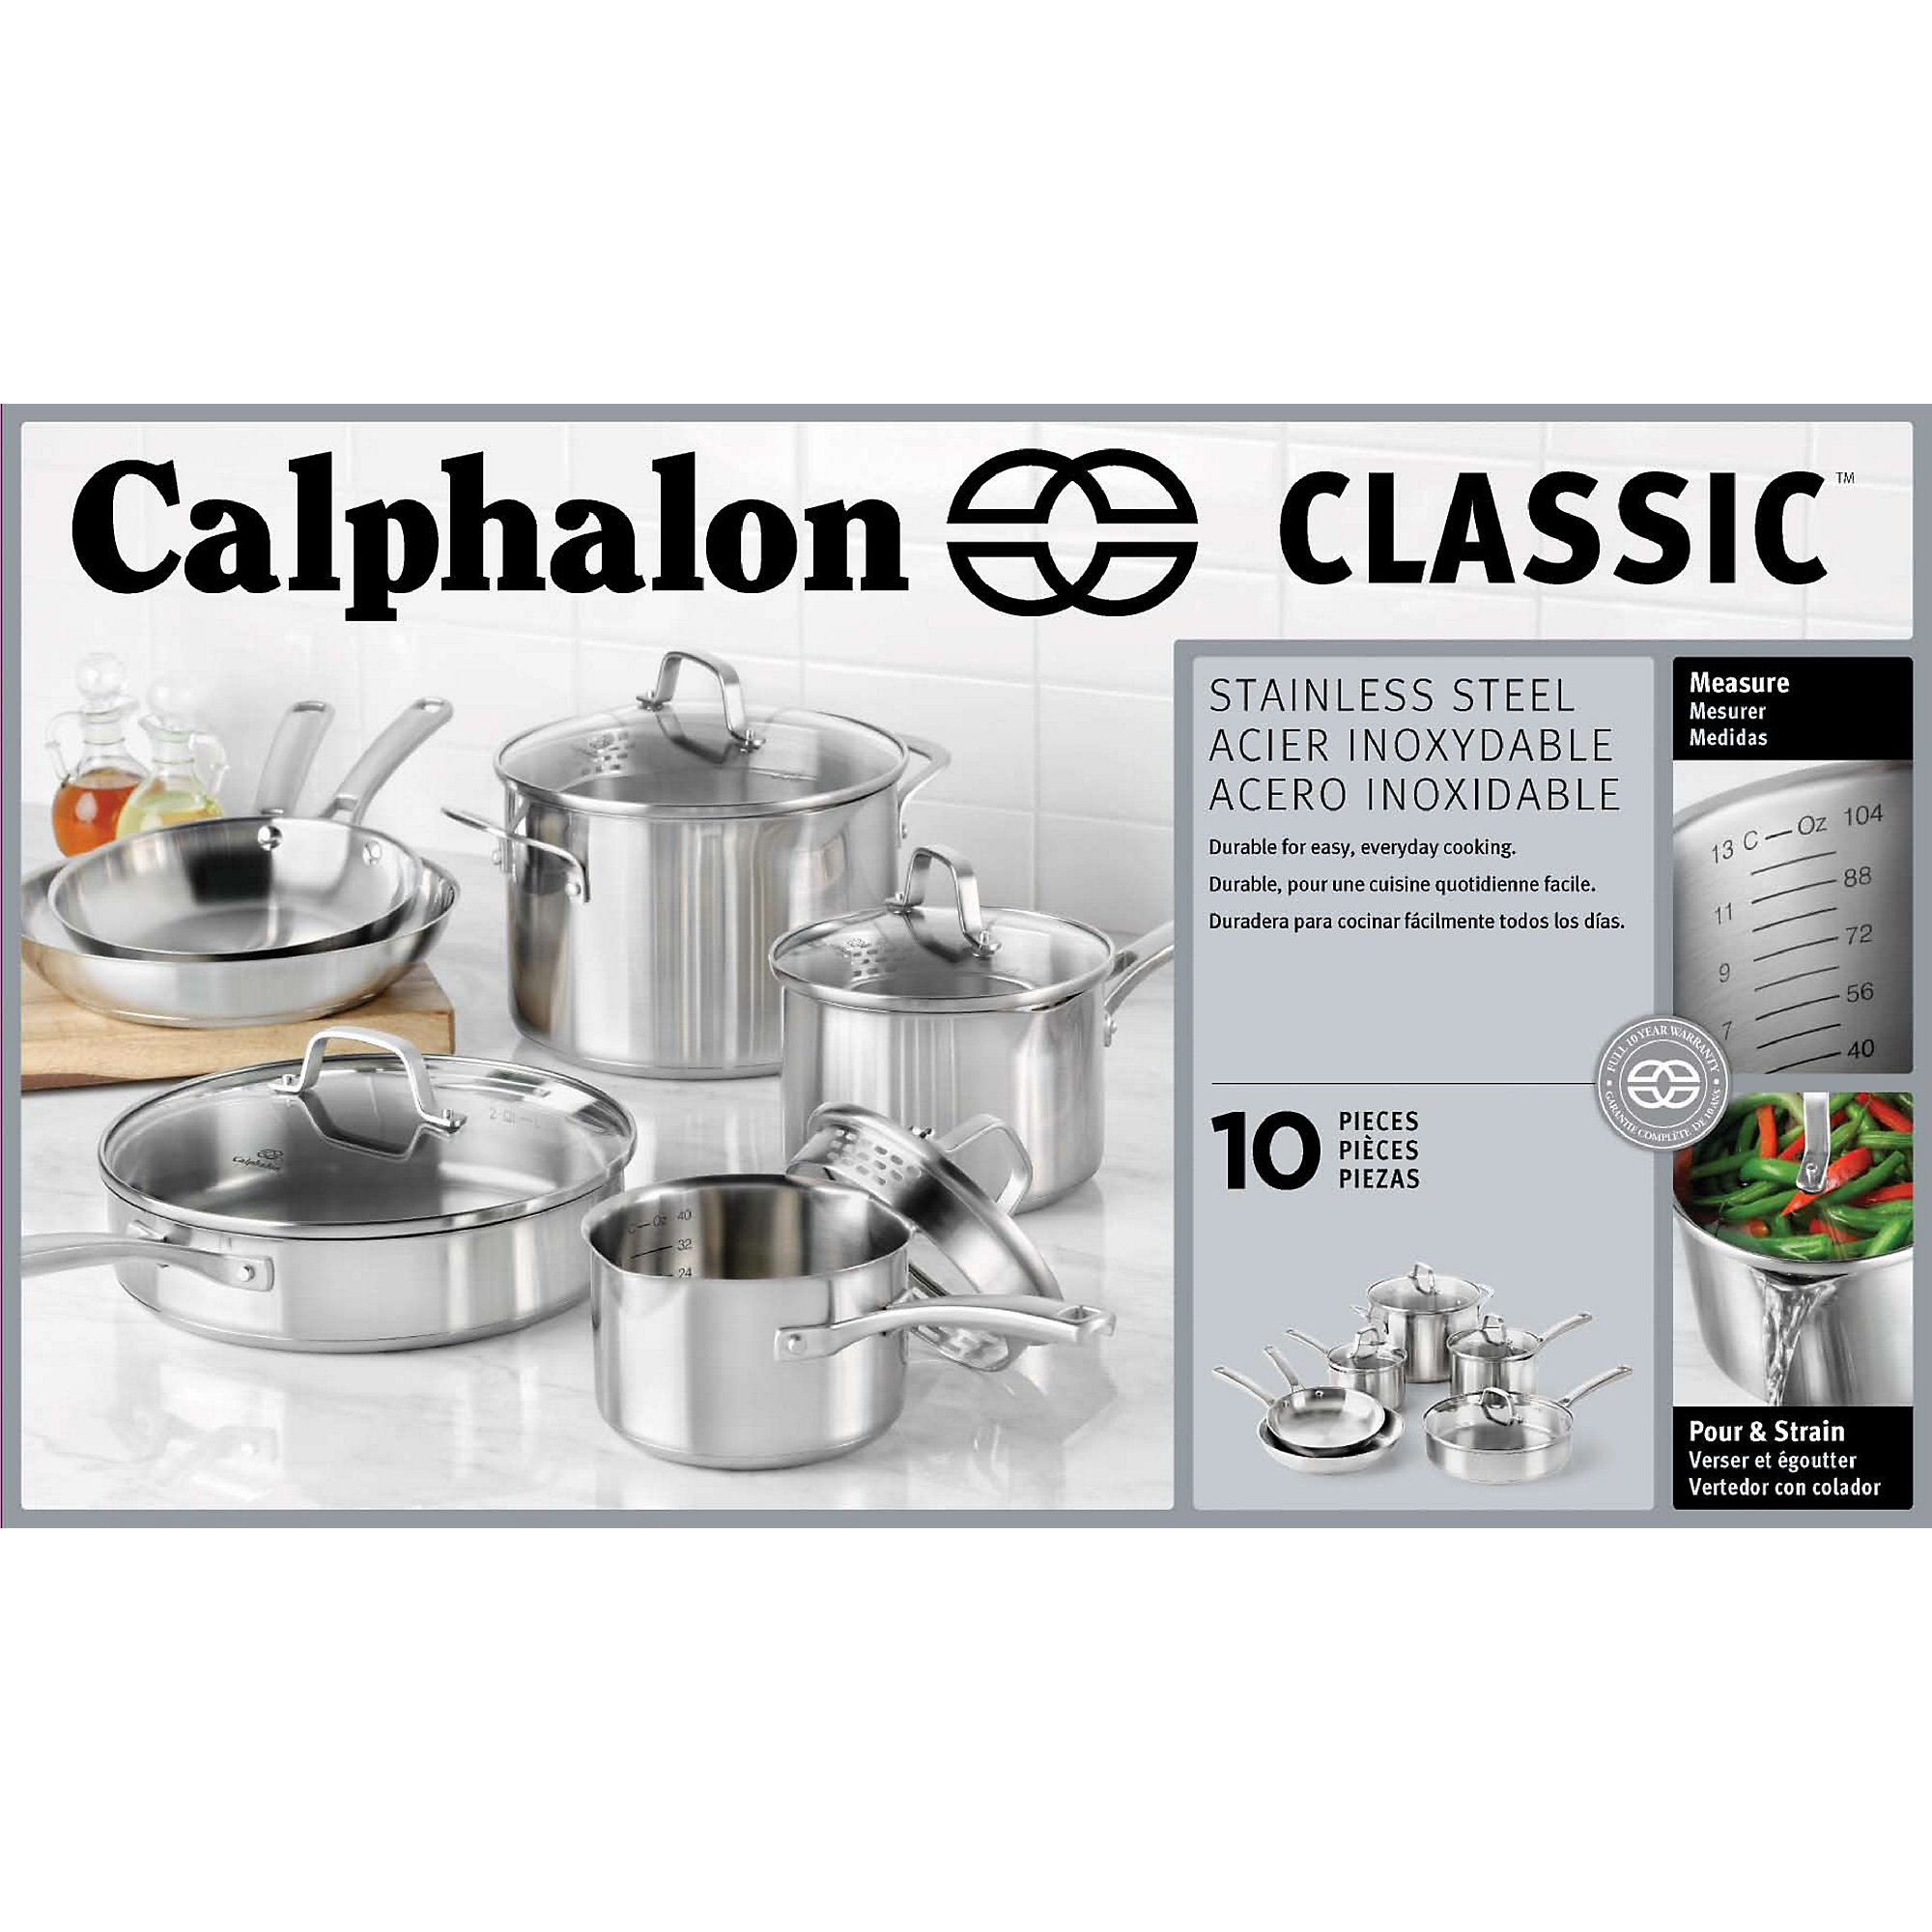 Calphalon Classic Stainless Steel Cookware Set, 10-Piece by Calphalon (Image #4)